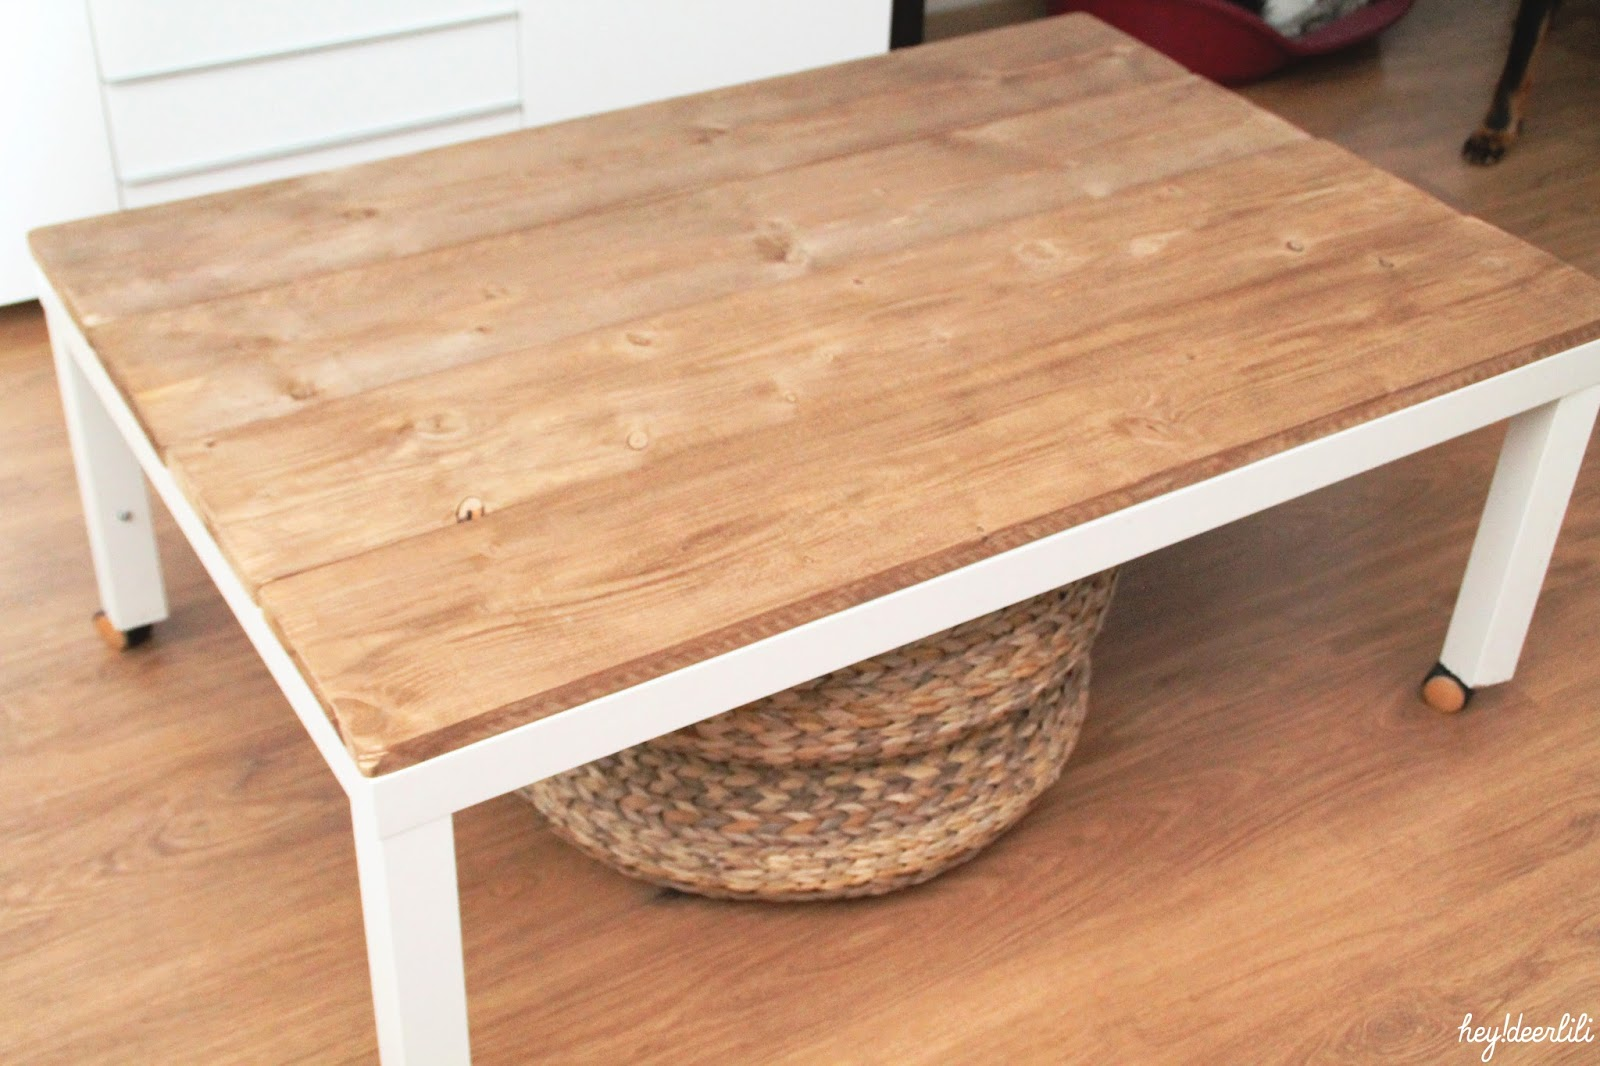 Customiser une table basse ikea - Customiser table basse en bois ...